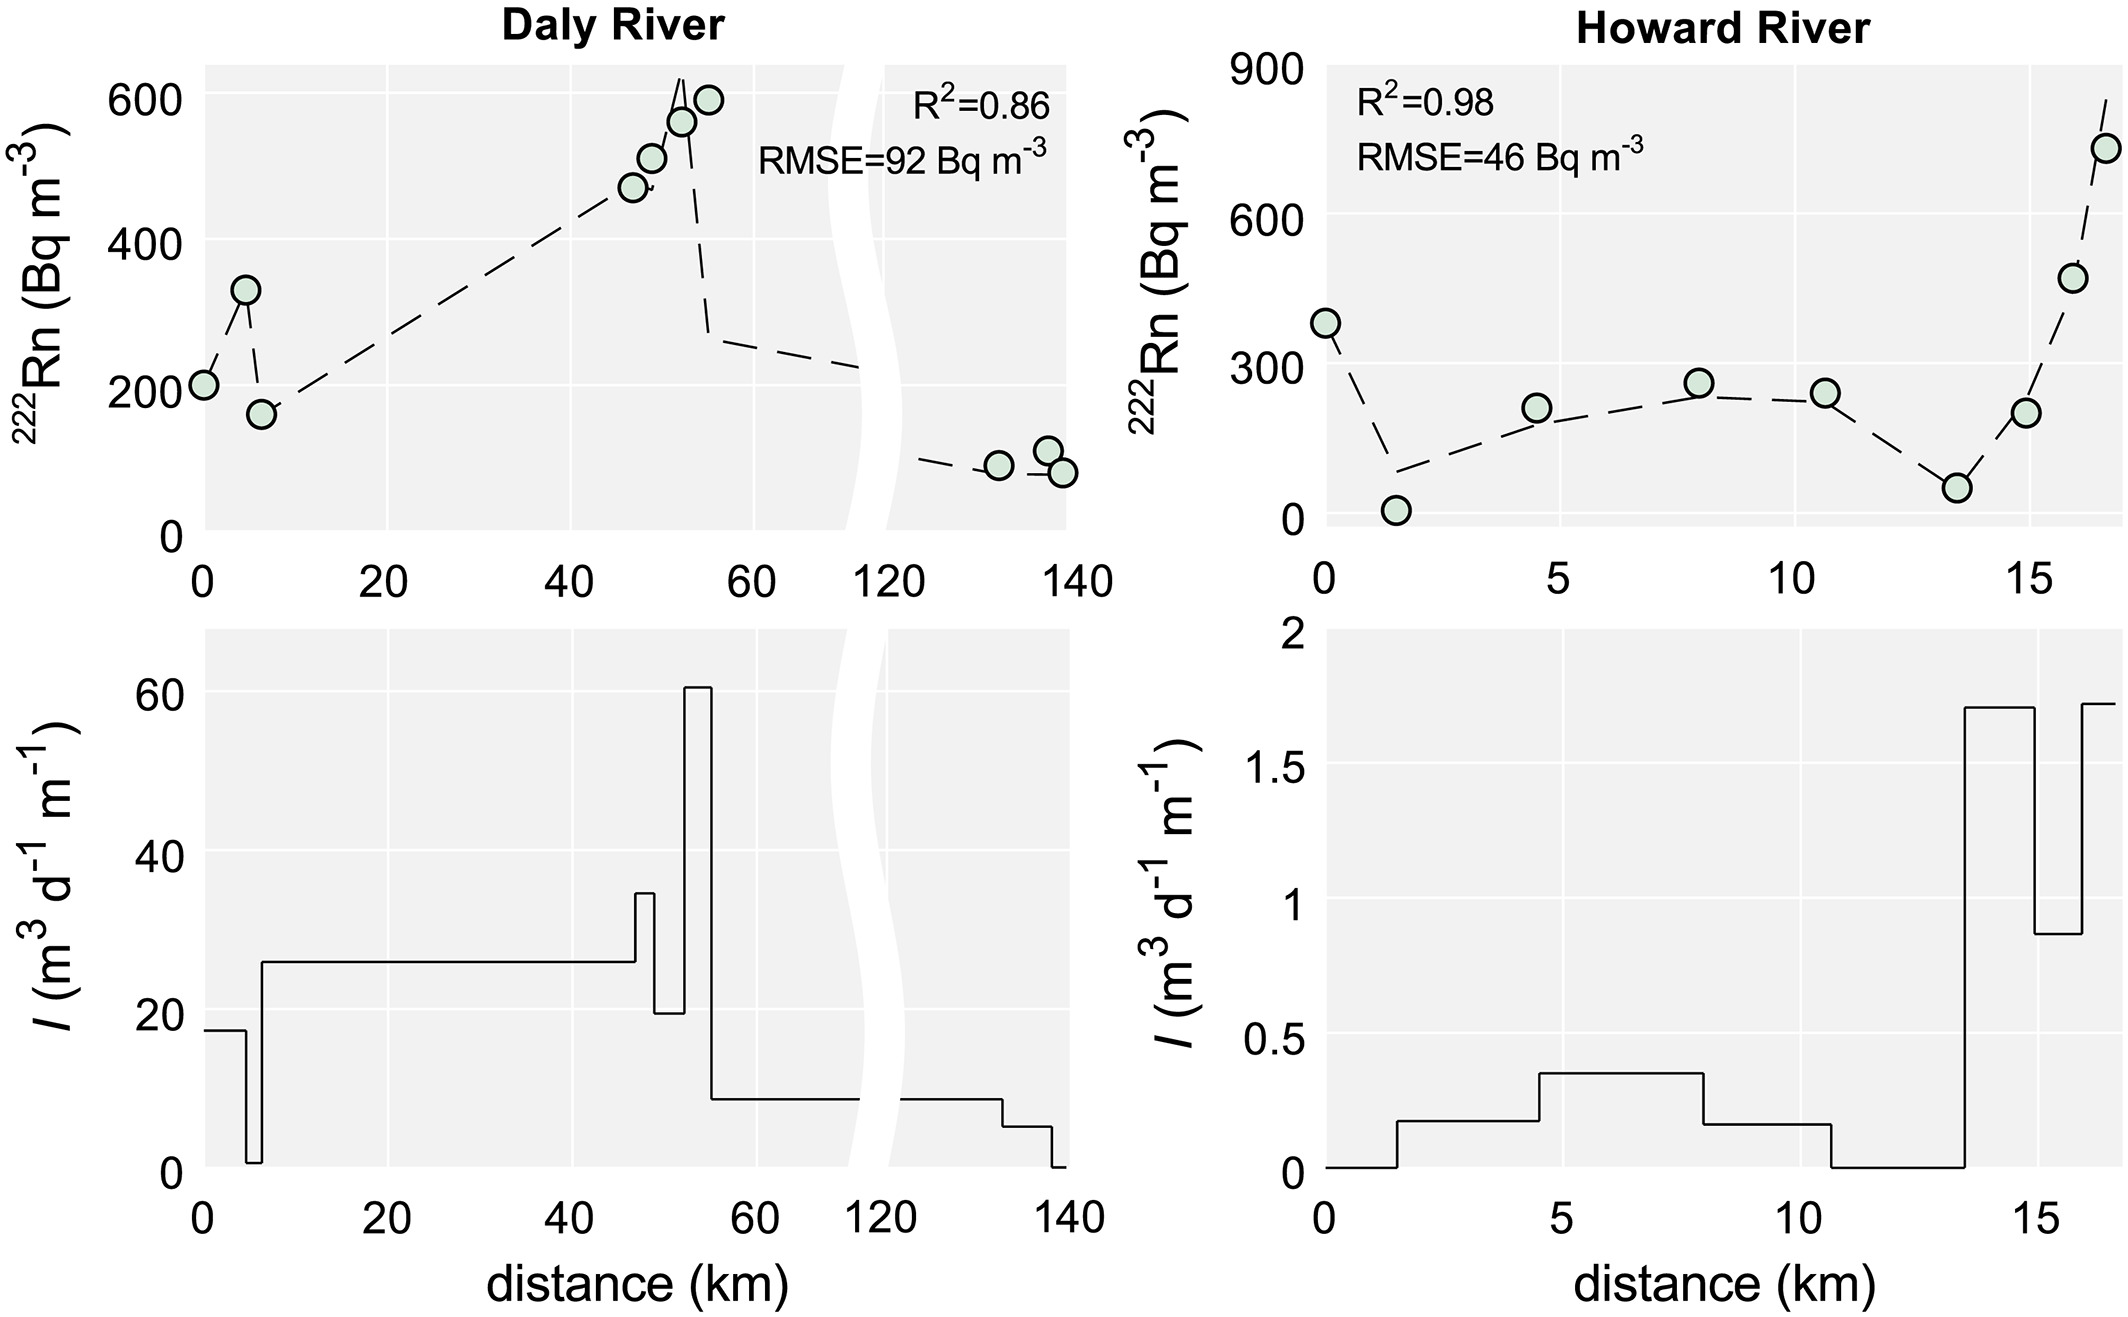 Prêter son Jardin Best Of Groundwater‐derived Dic and Carbonate Buffering Enhance Of 69 Best Of Prêter son Jardin